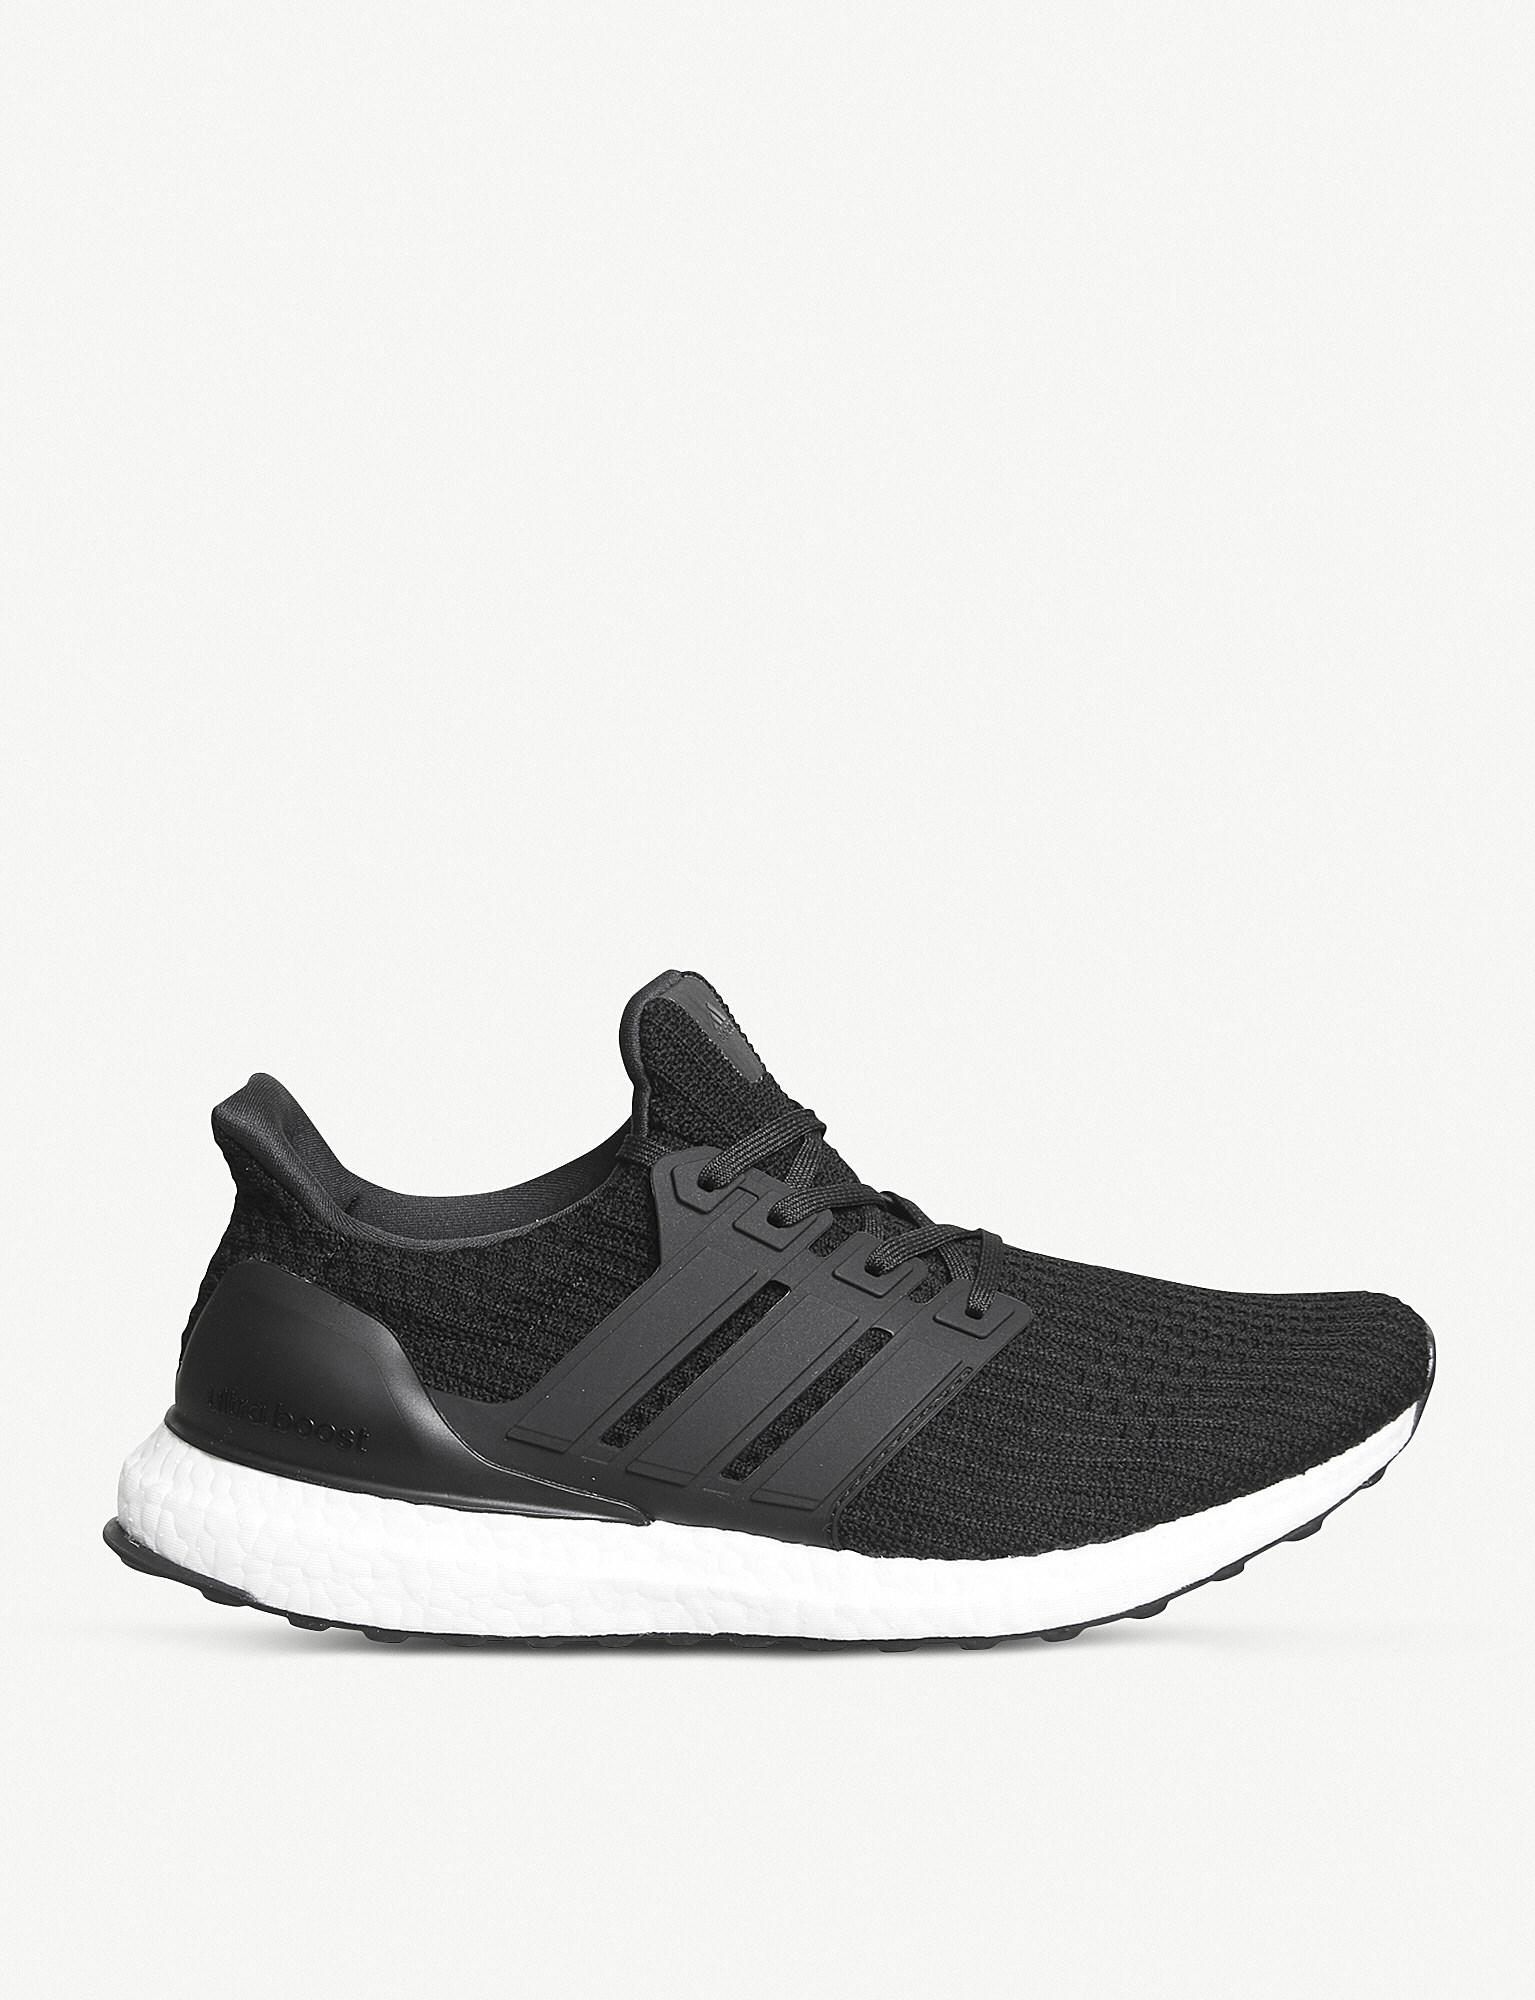 3879dc1fa7fa Lyst - Adidas Ultra Boost Primeknit Trainers in Black for Men